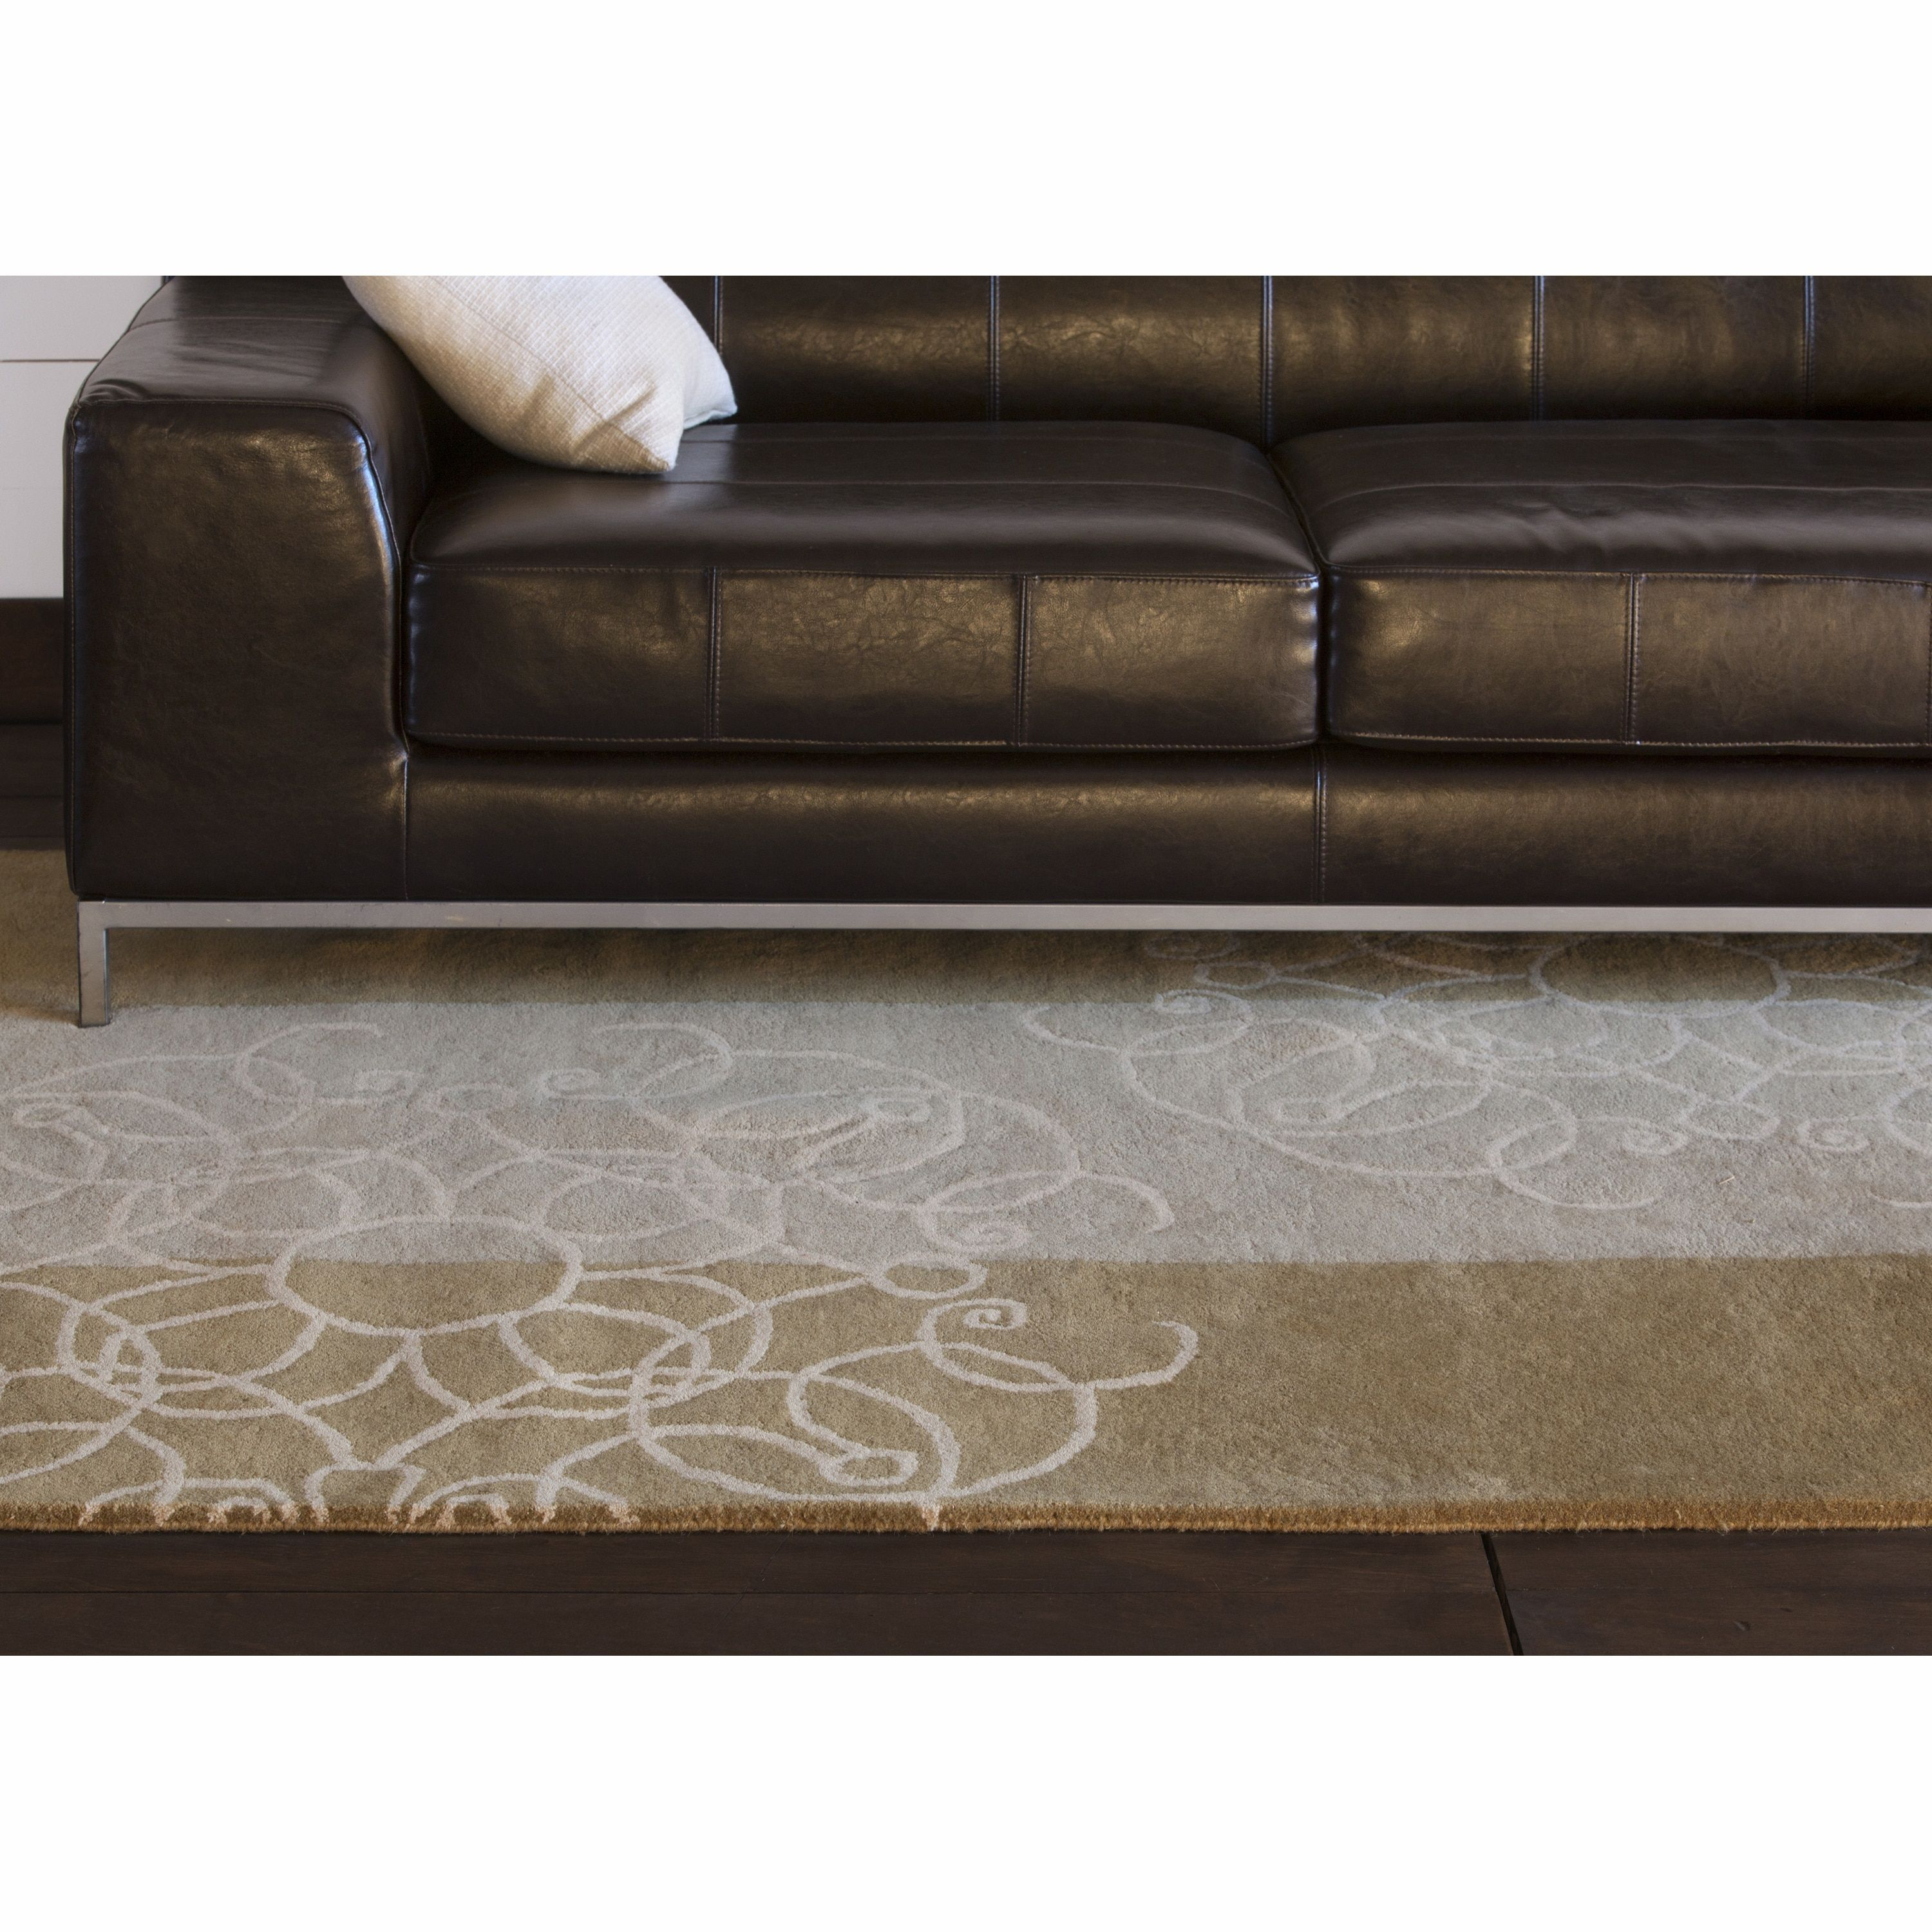 "Artist's Loom Hand-tufted Transitional Abstract Wool Rug (5'x7'6"") ((5'x7'6"")), Brown, Size 5' x 8'"